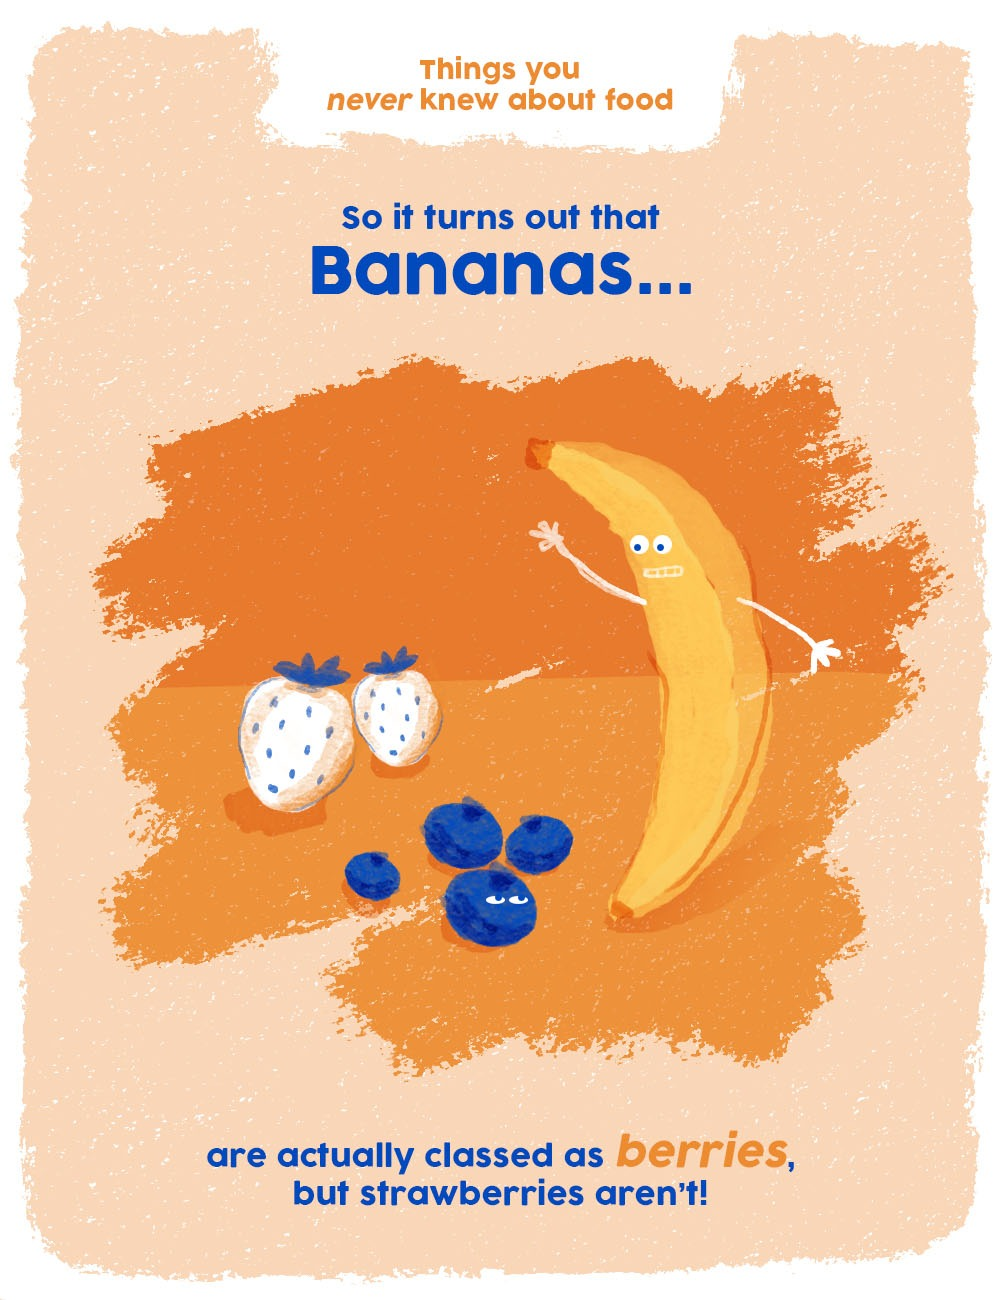 things you never knew about food graphics - bananas are berries